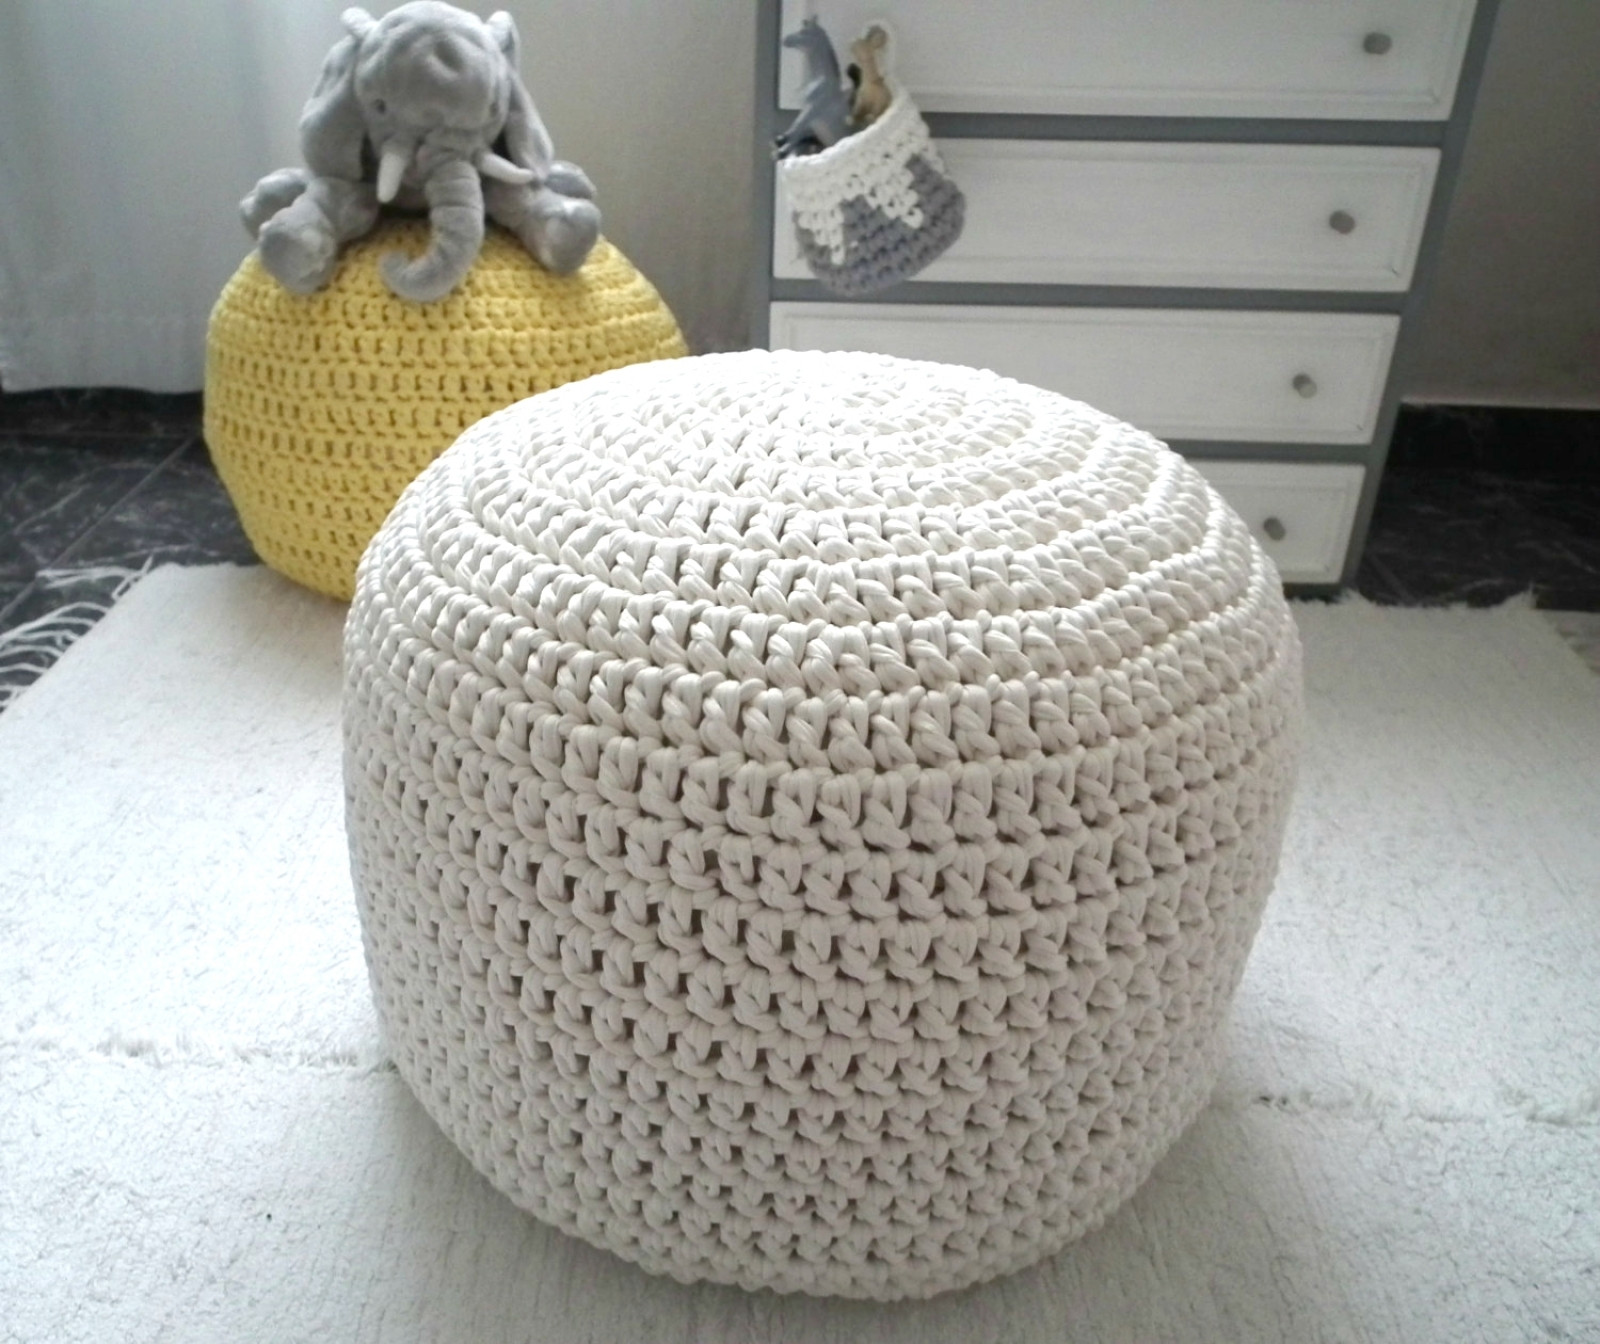 Crochet Ottoman New White F Wh Crochet Pouf Ottoman Nursery Foot Stool Of Incredible 42 Ideas Crochet Ottoman